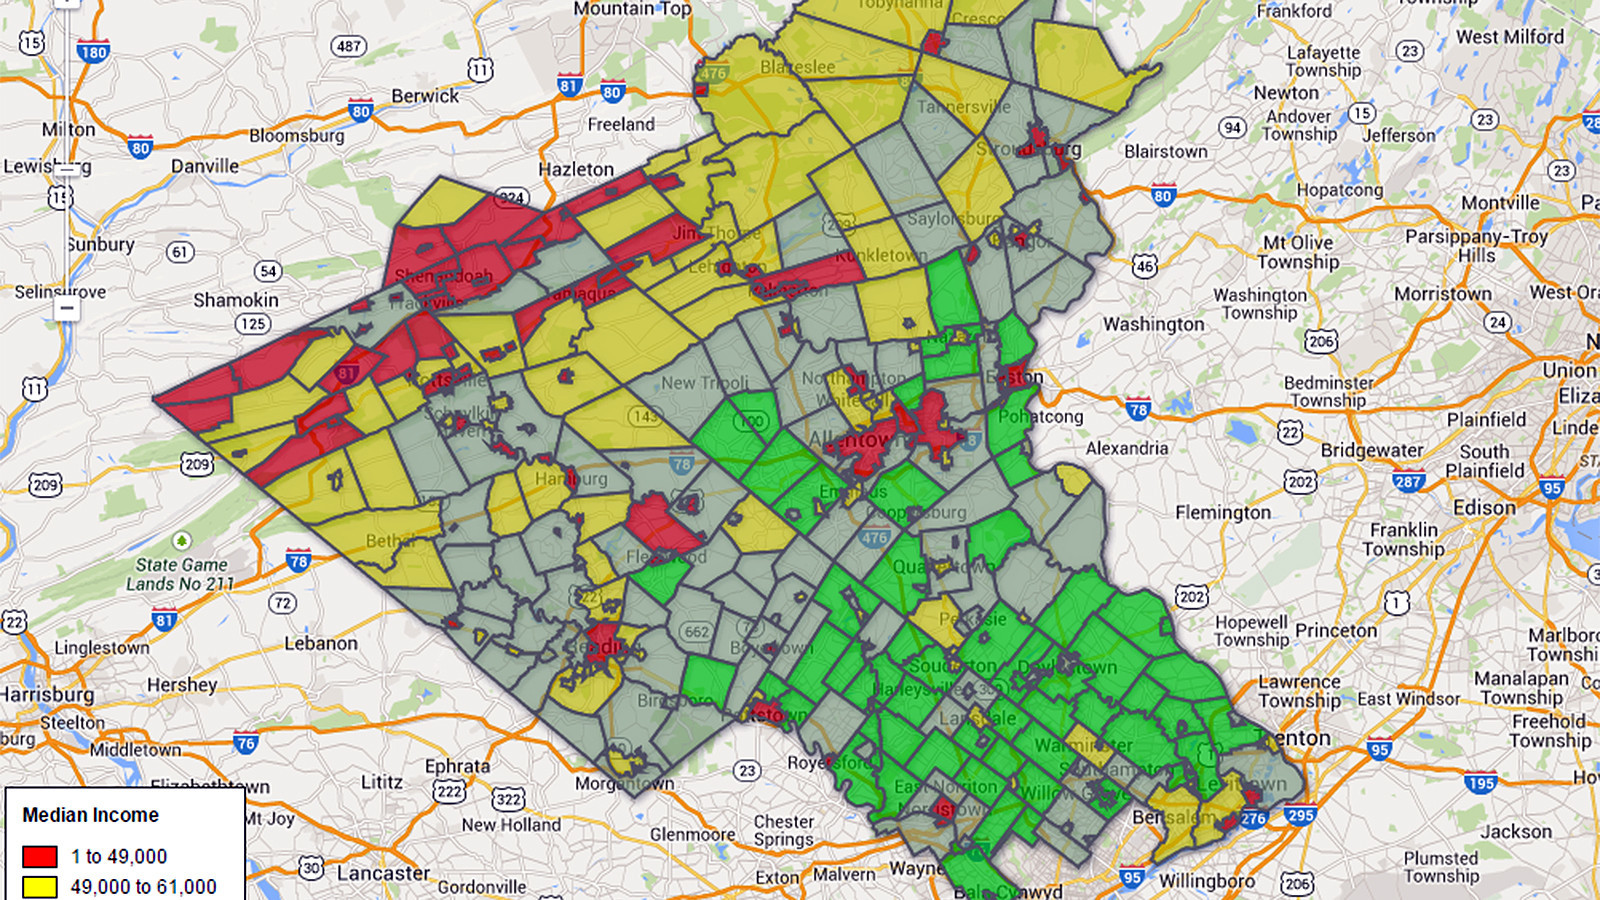 Median Income In Eastern Pennsylvania Towns The Morning Call - Map of pa towns